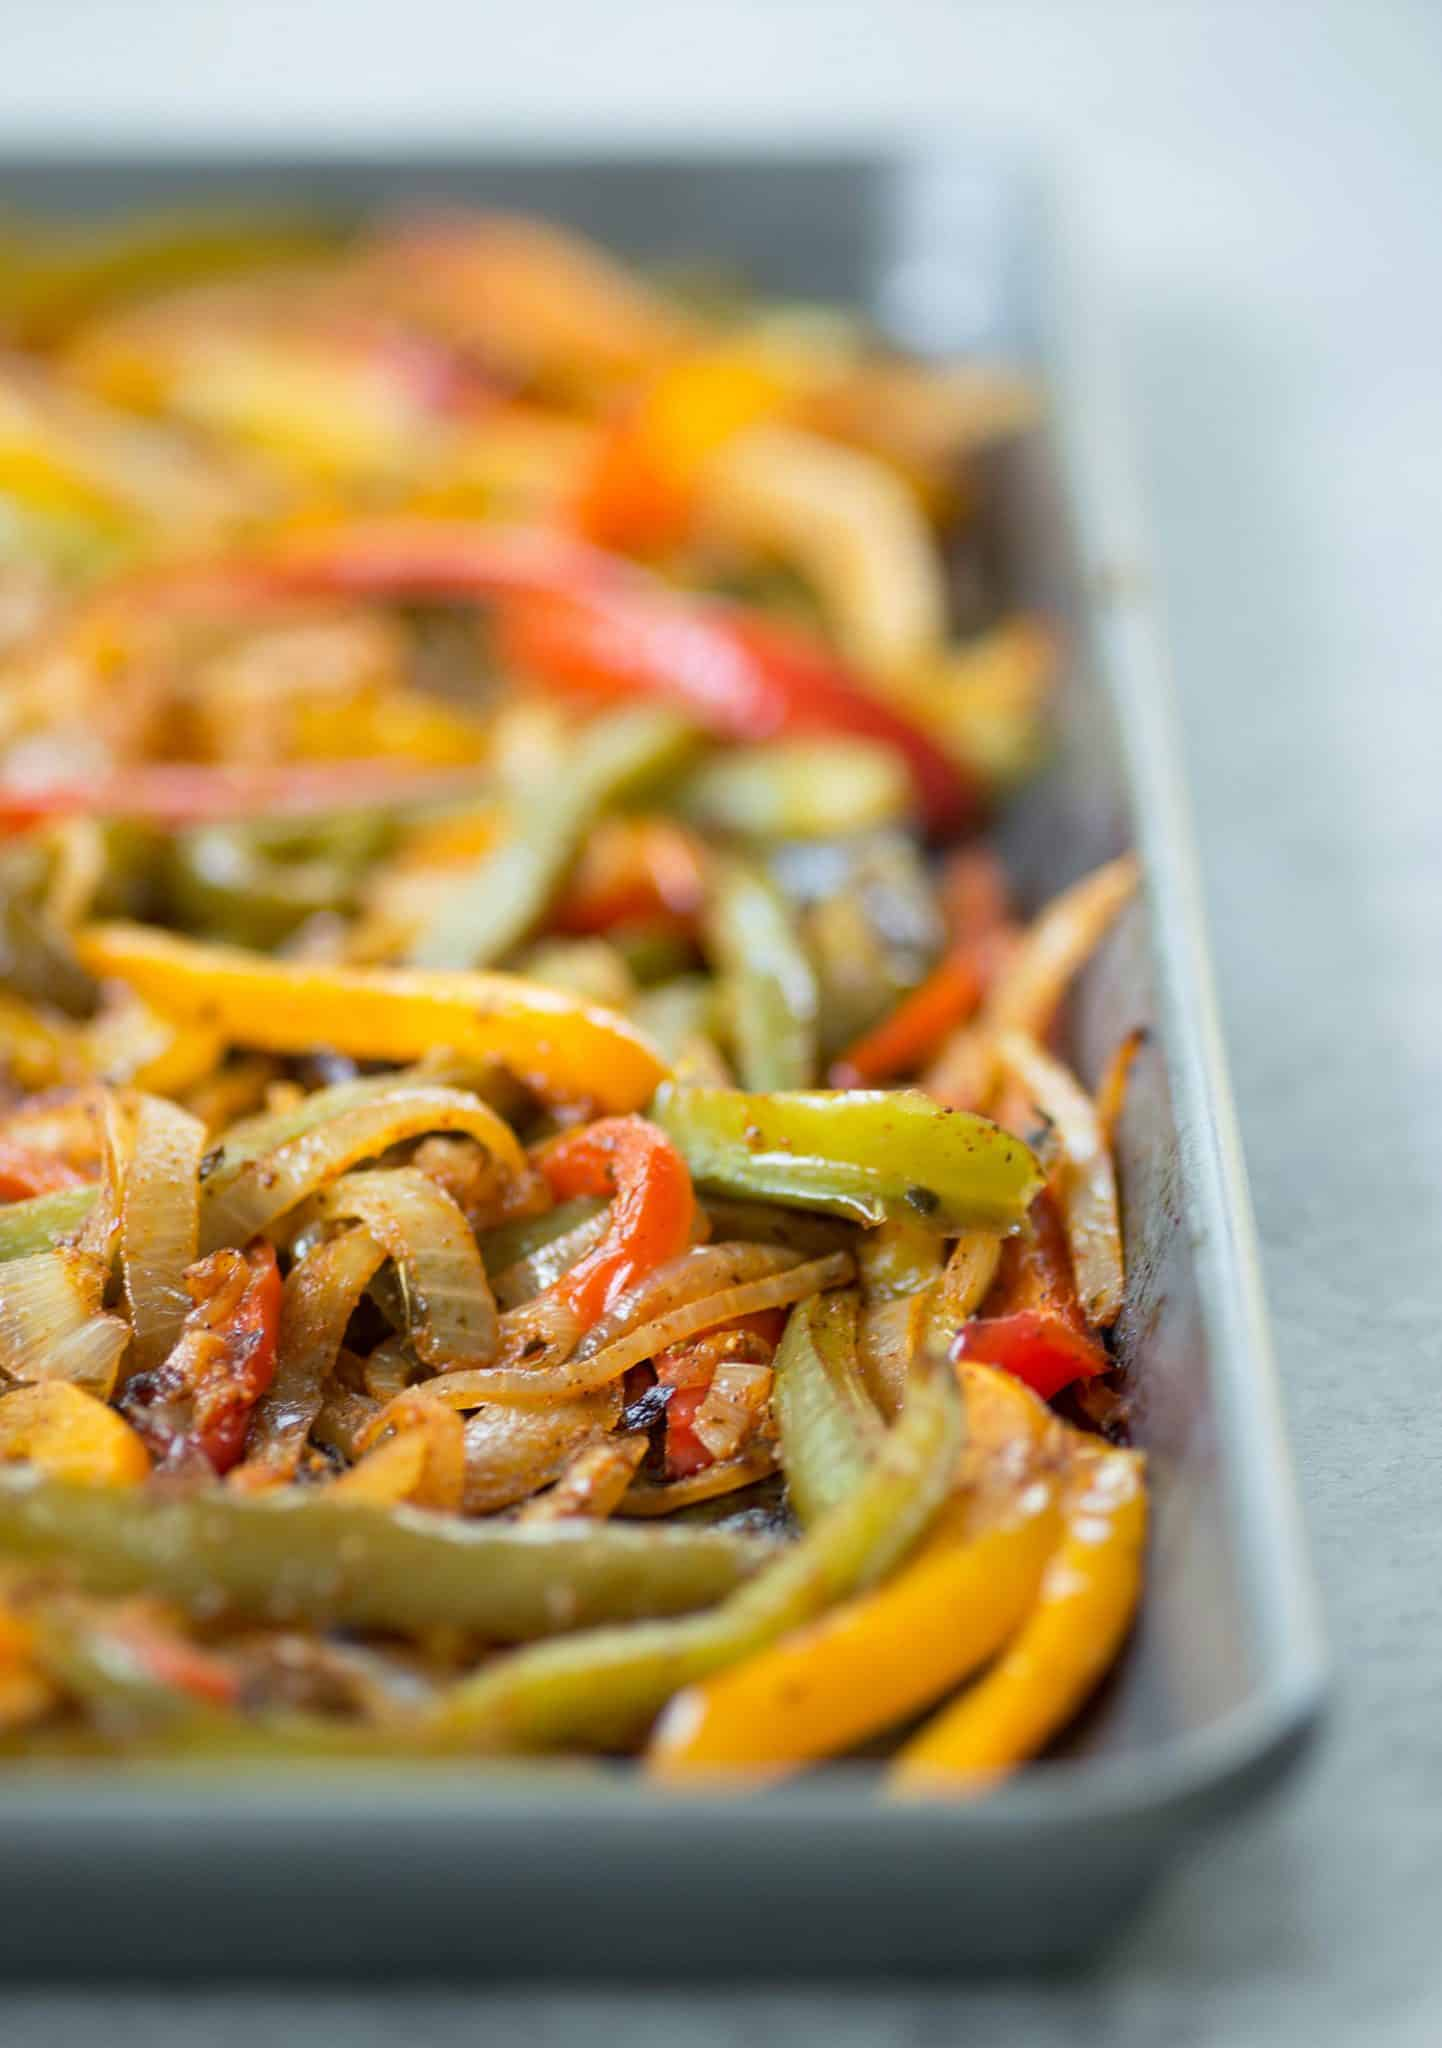 Oven Roasted Fajitas! These veggie fajitas are such a simple meal. Throw everything in the oven and dinner is ready in just 30 minutes. Customize them however you like 'em. | www.delishknowledge.com